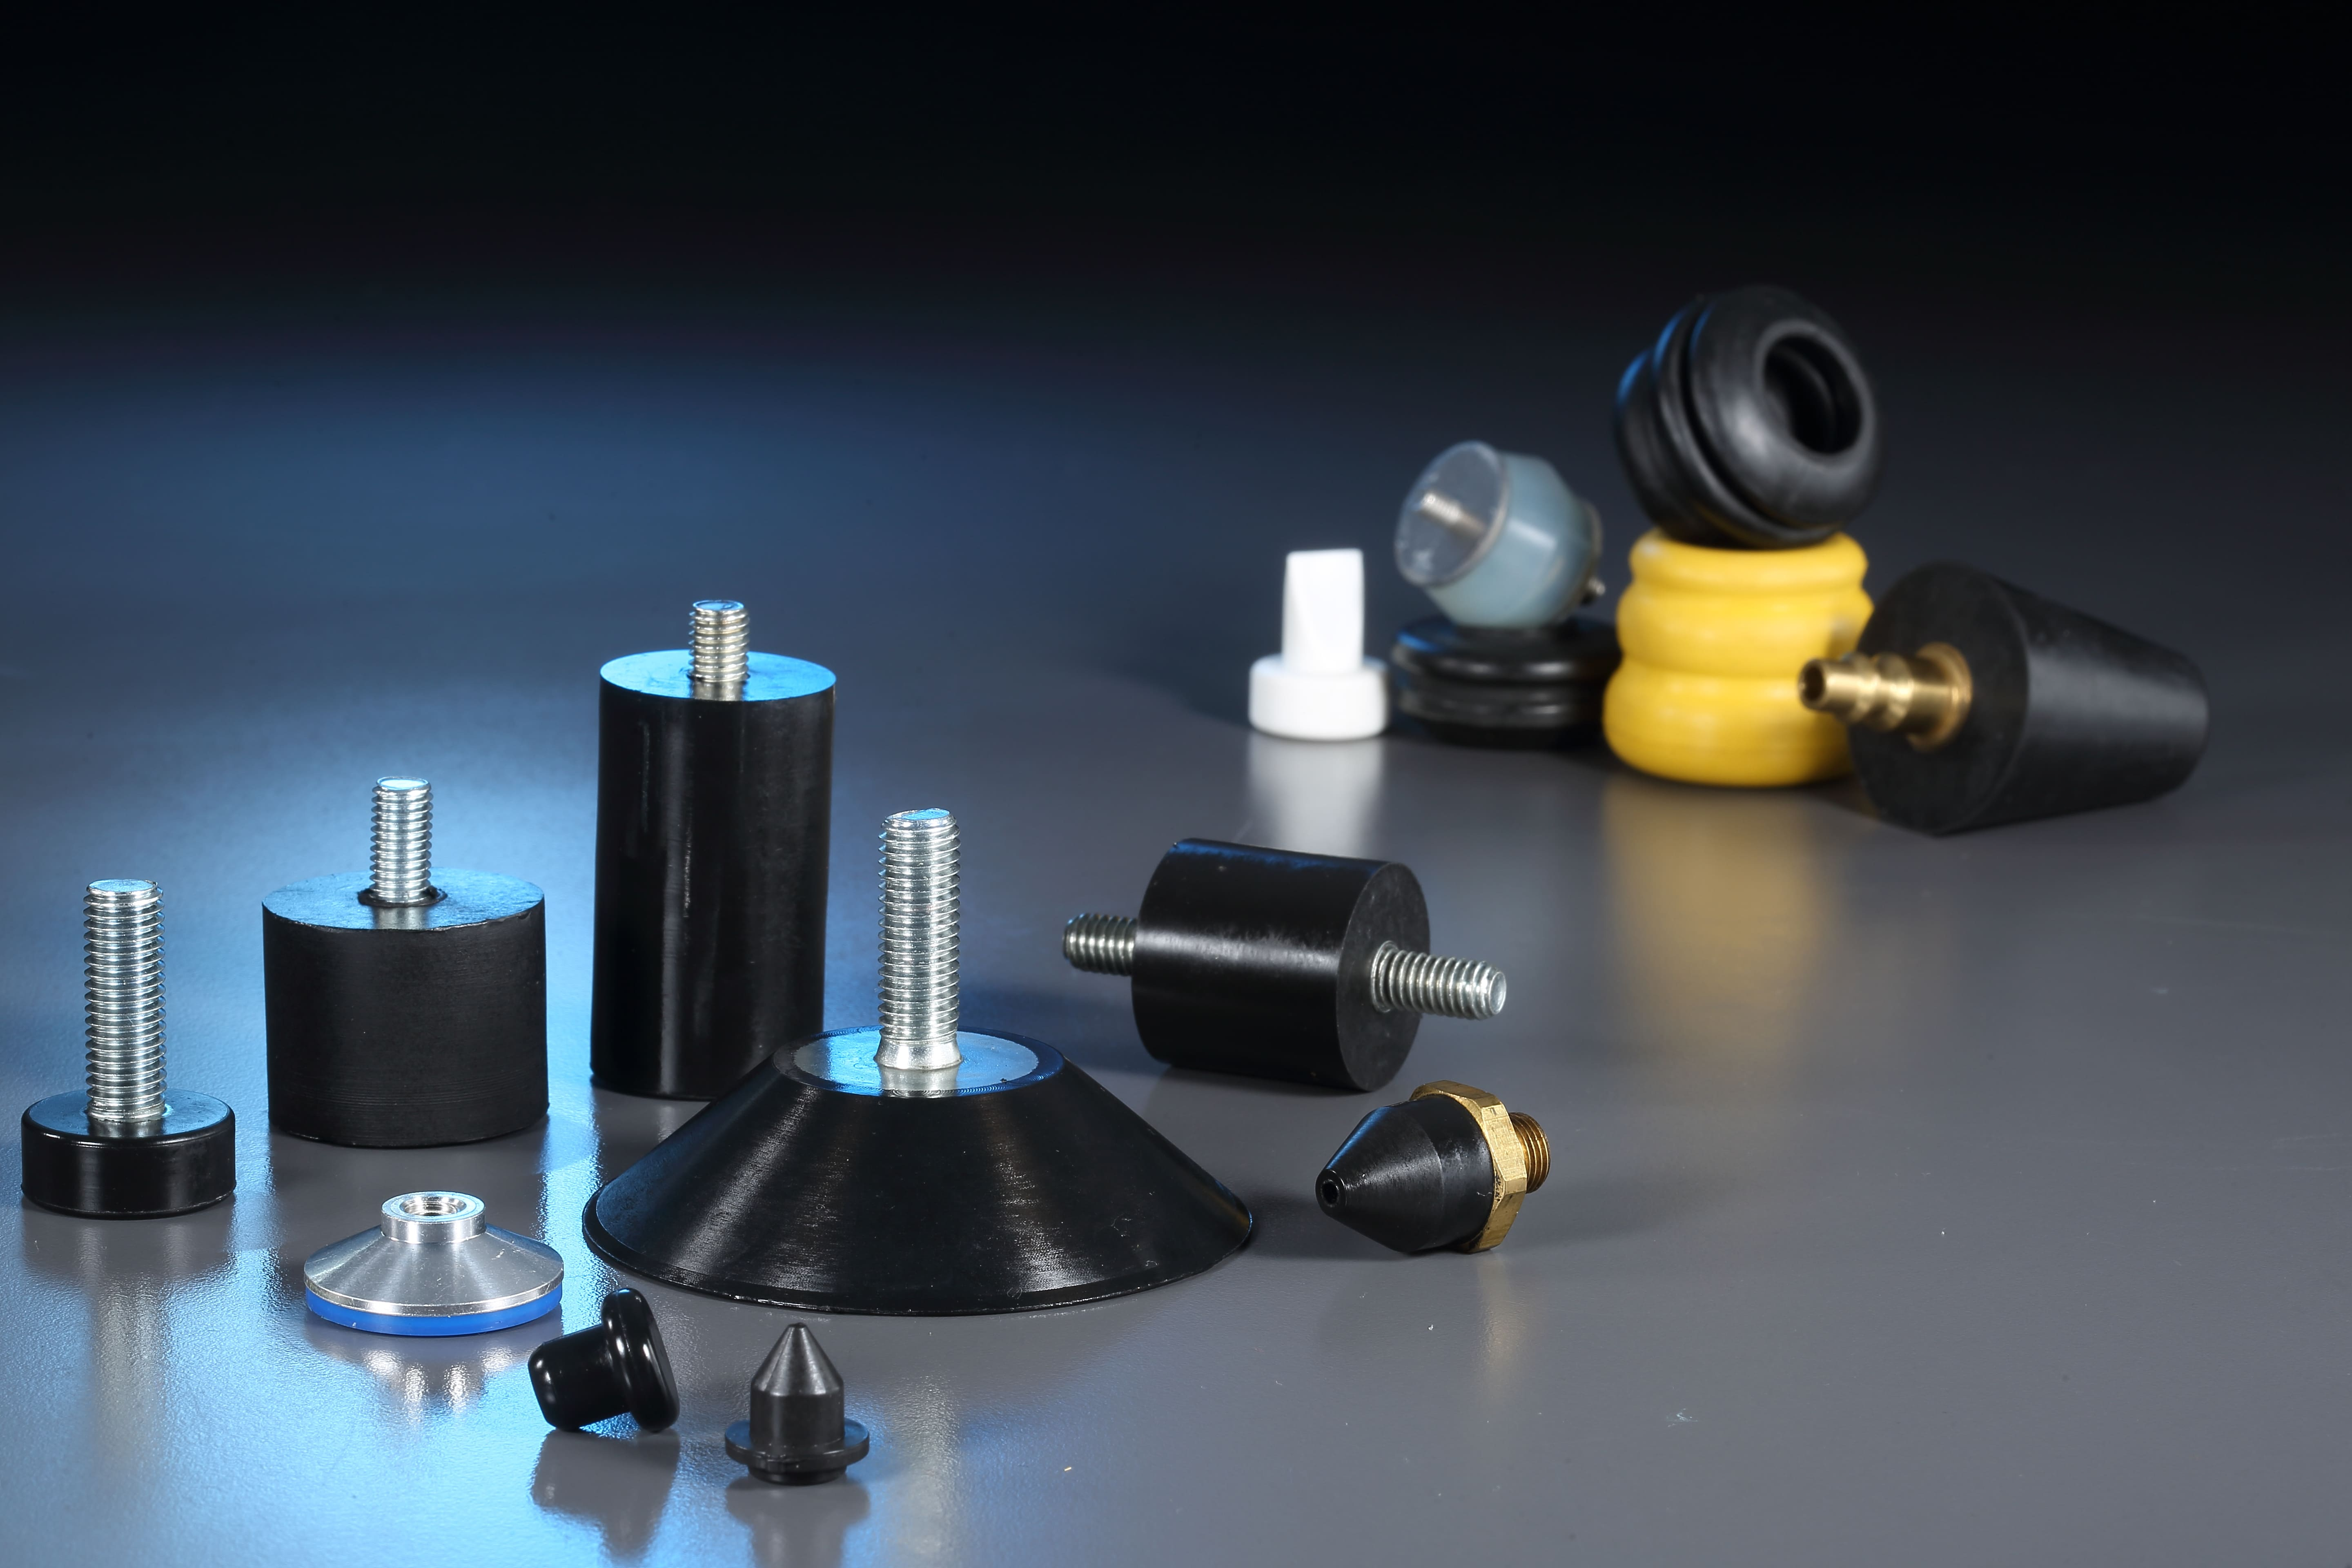 Automobile Anti-Vibration rubber,spigot,nozzle for Rubber, Plastic Parts made by Yee Ming Ying Co., LTD. 昱銘穎有限公司 - MatchSupplier.com